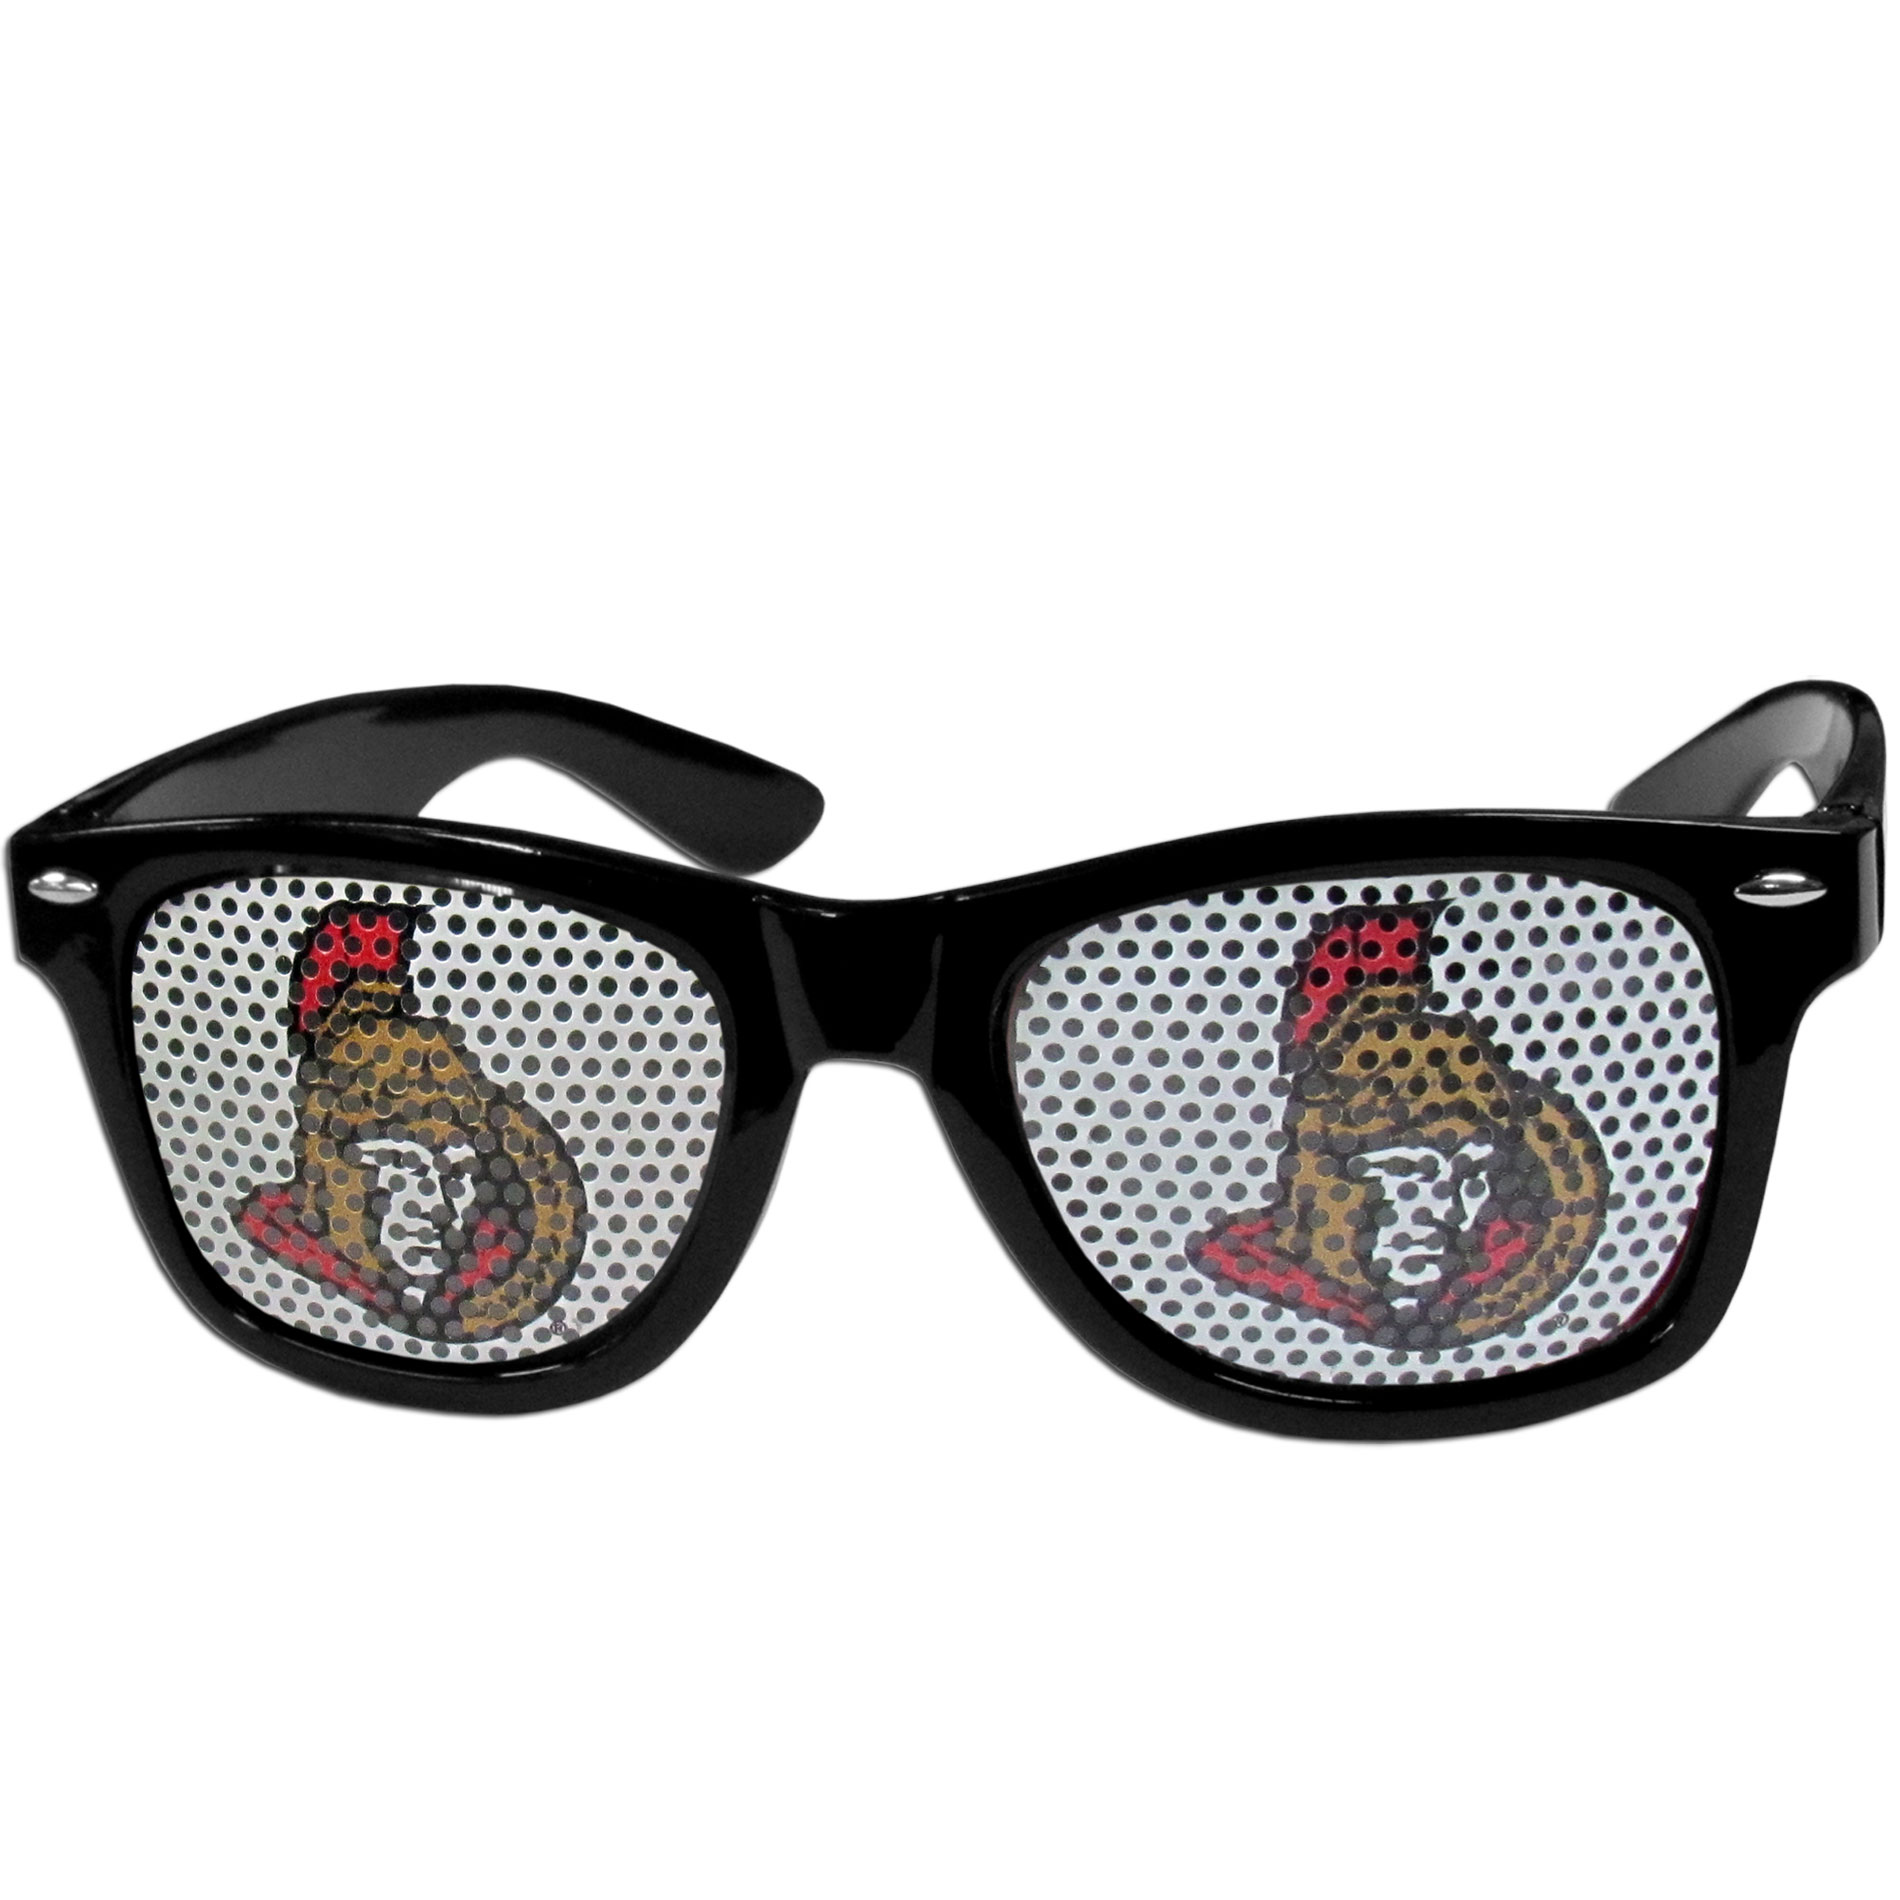 Ottawa Senators Game Day Shades - Officially licensed Ottawa Senators game day shades are the perfect accessory for the devoted Ottawa Senators fan! The Ottawa Senators game day sunglasses have durable polycarbonate frames with flex hinges for comfort and damage resistance. The lenses feature brightly colored Ottawa Senators clings that are perforated for visibility.